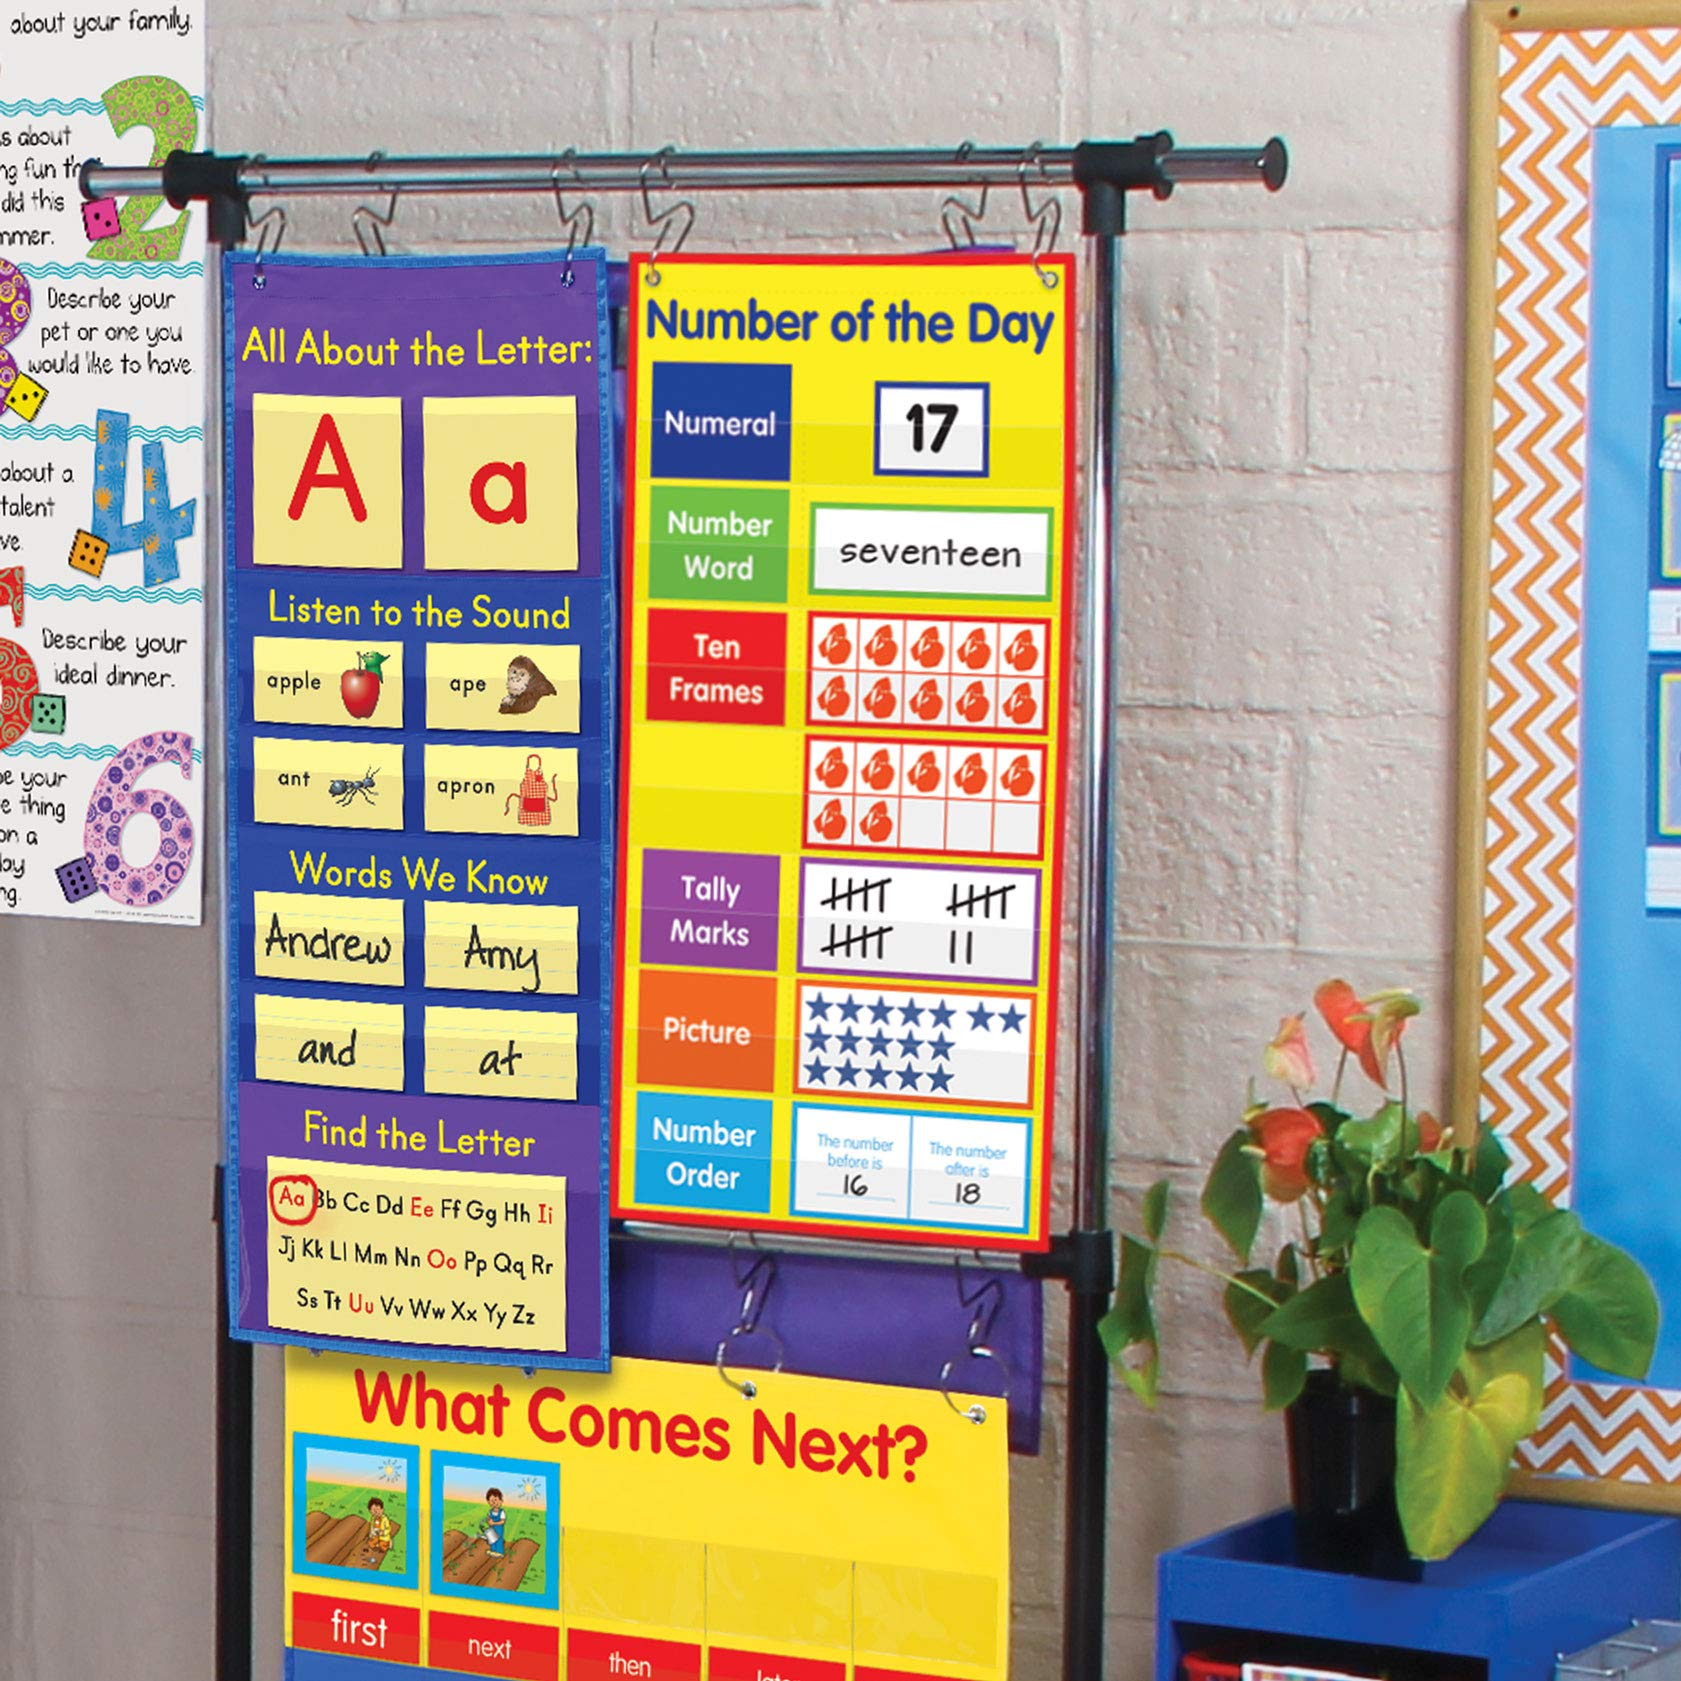 Really Good Stuff All About Letters Pocket Chart - Get Students Involved in Learning The Alphabet, Letter Sounds and Reading Basics - Grommets and Magnetic Strip for Easy Hanging, 14'' x 37'' by Really Good Stuff